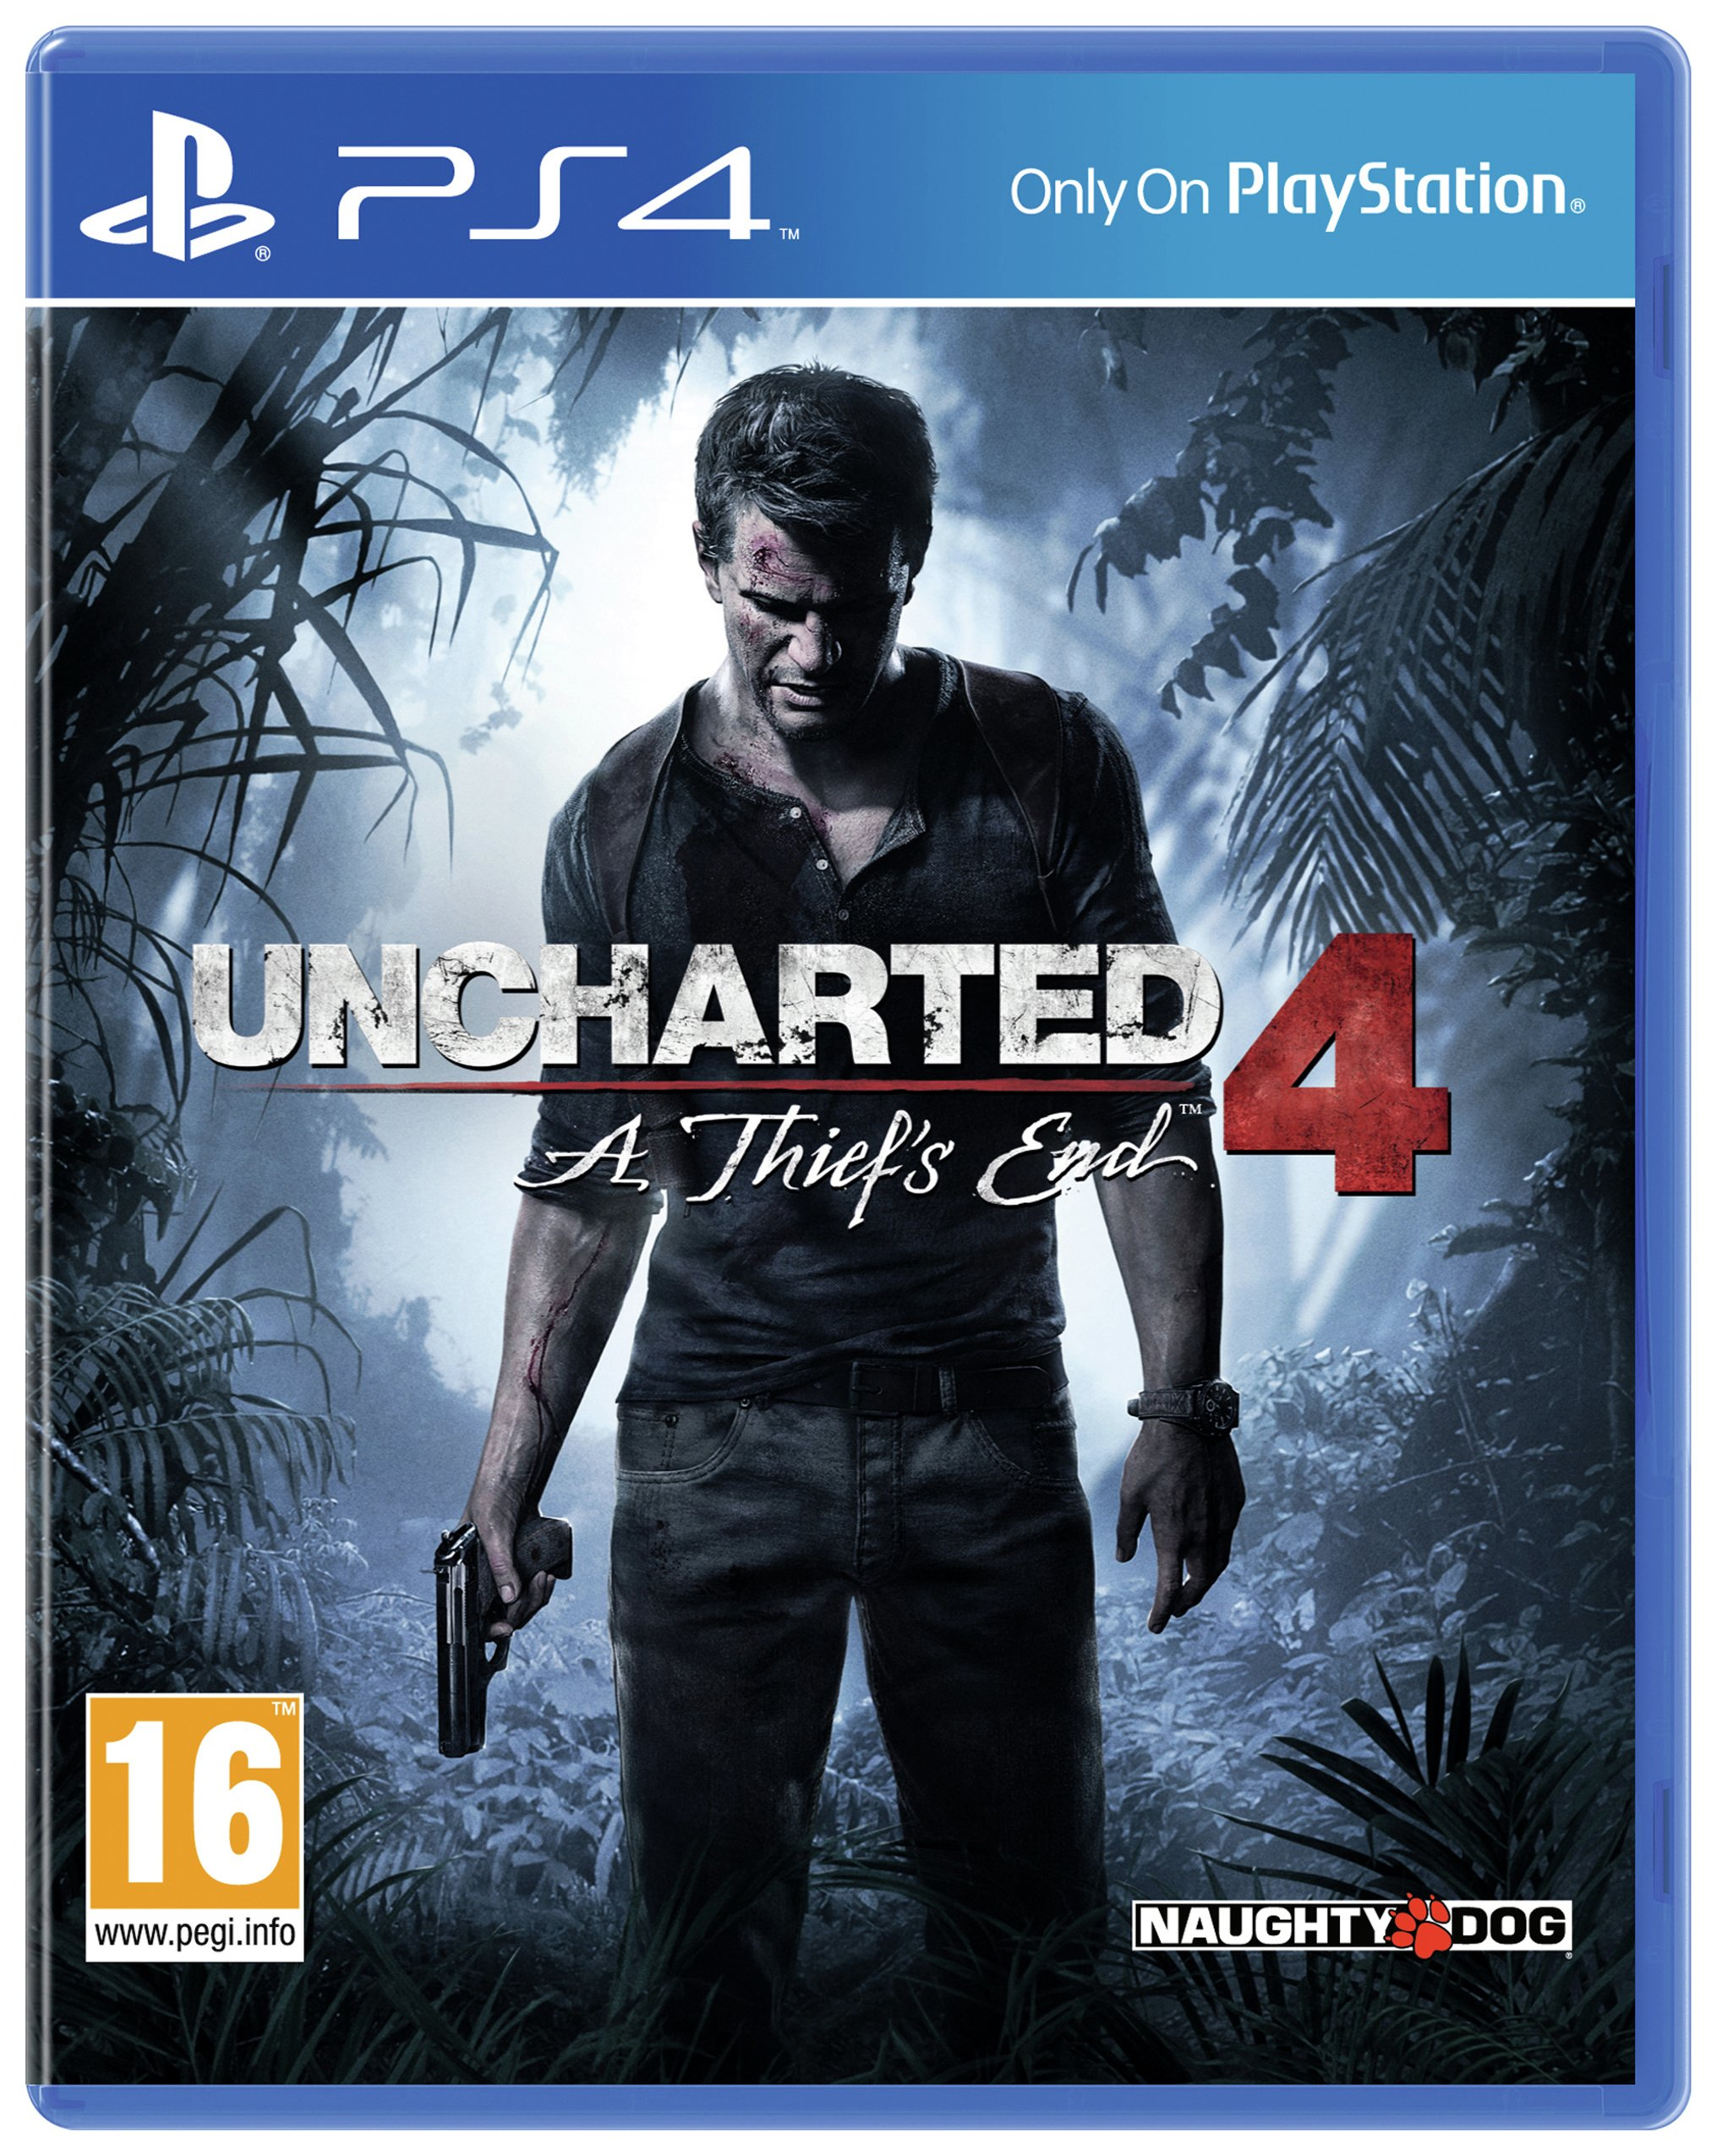 Uncharted 4 - A Thief's End Launch Edition - PS4 Game.